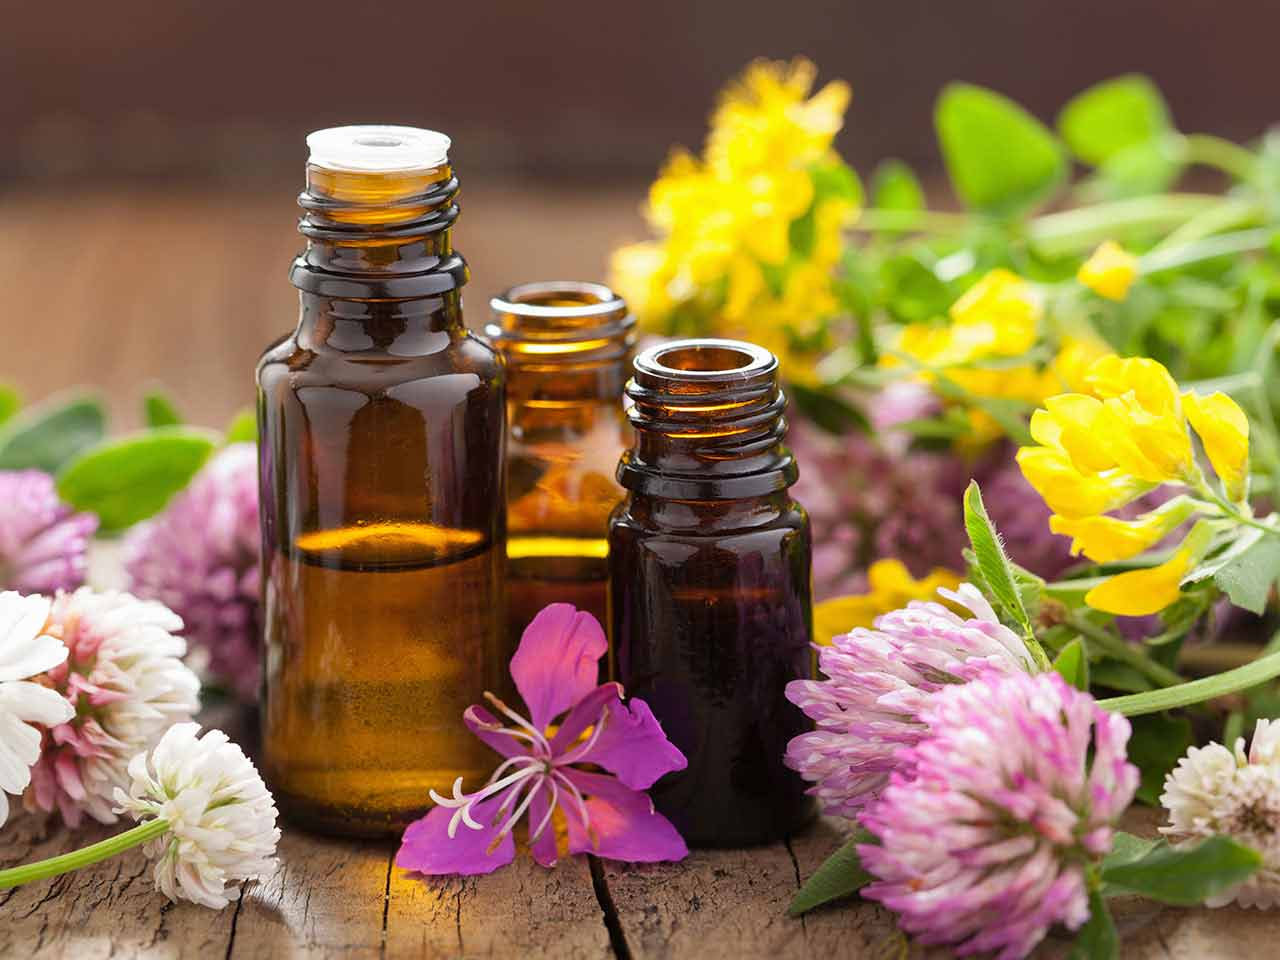 Essential oil bottles on wooden table with flowers